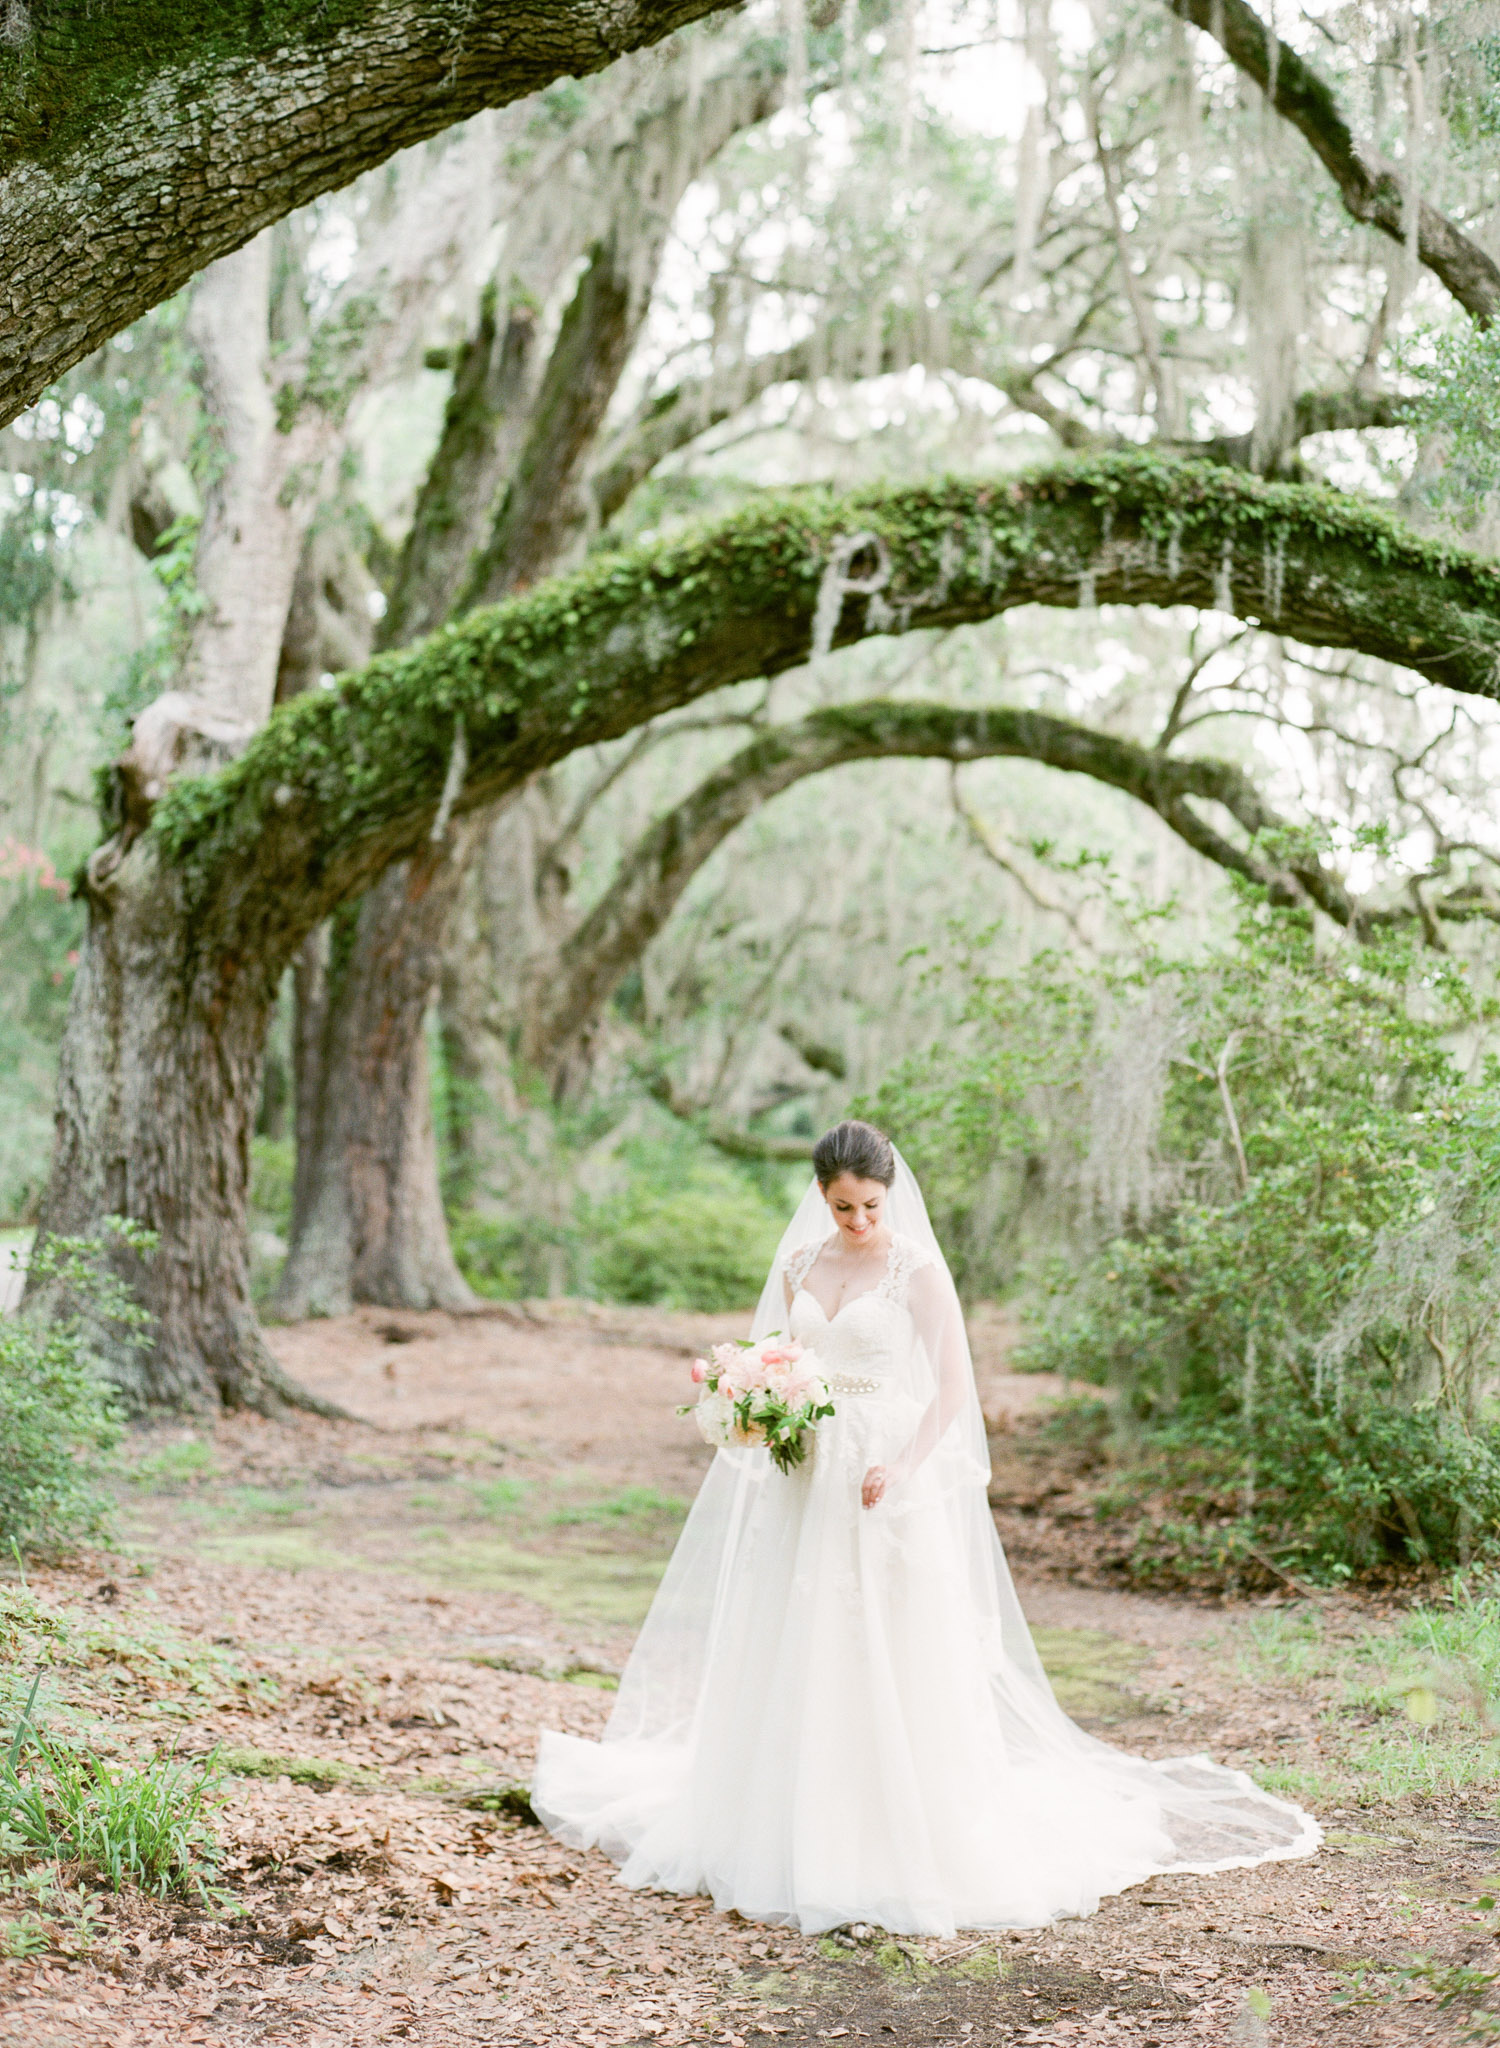 Charleston-Wedding-Photographer-The-Cedar-Room-43.jpg